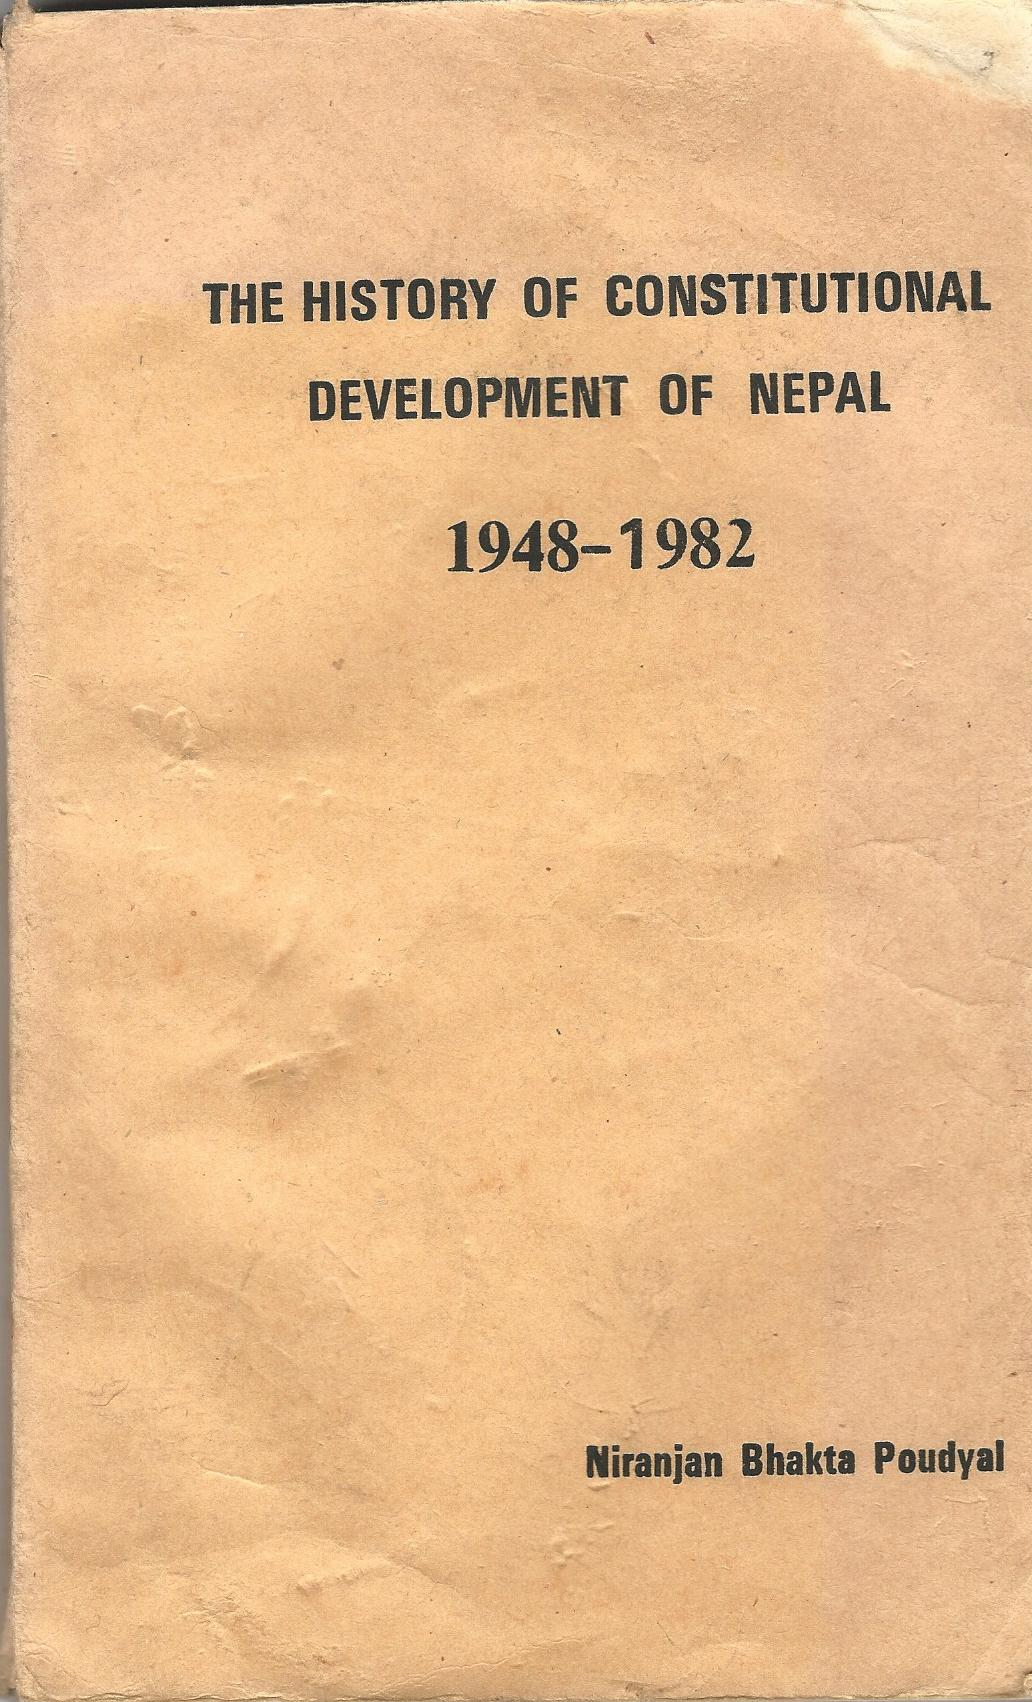 Image for The History of Constitutional Development of Nepal 1948-1982